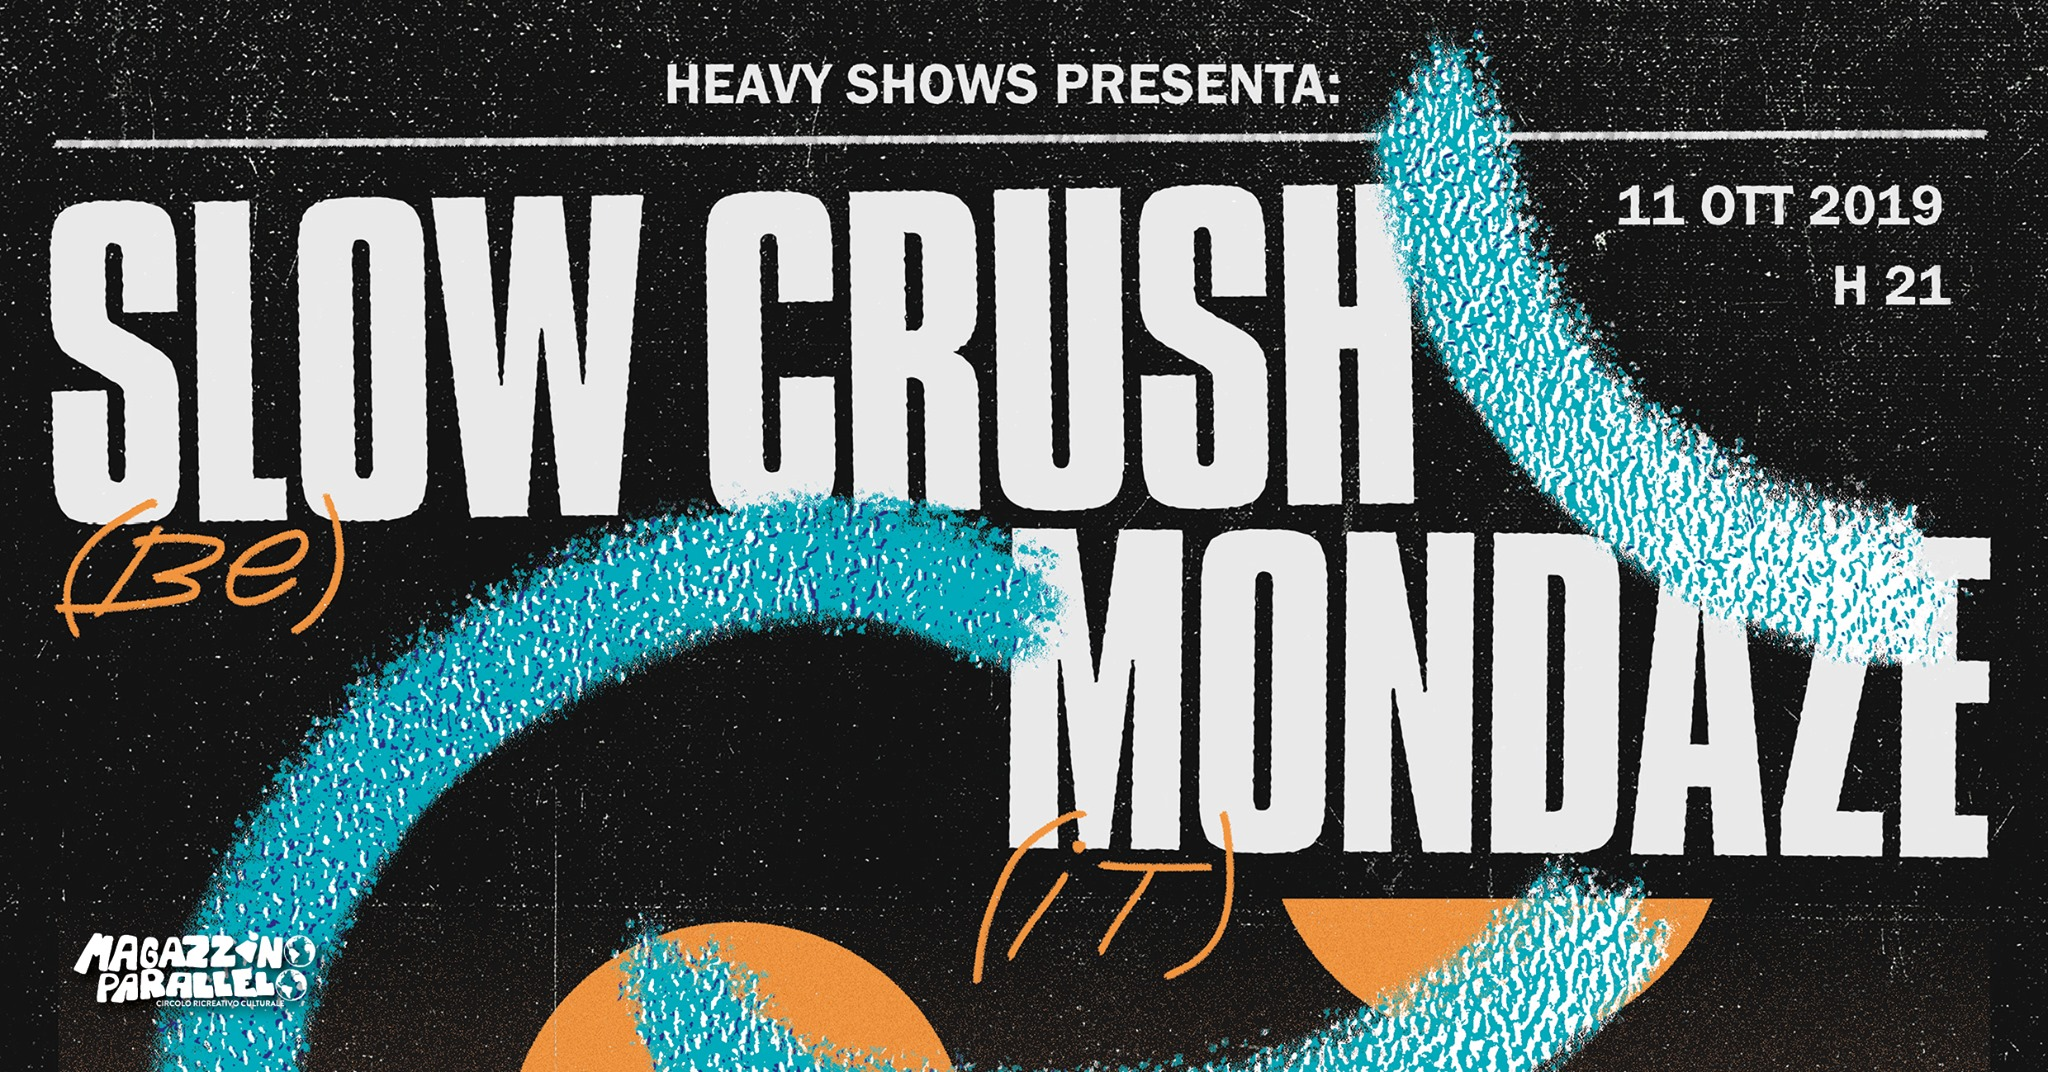 Slow Crush ⌁ Mondaze / HeavyShows / at Magazzino Parallelo